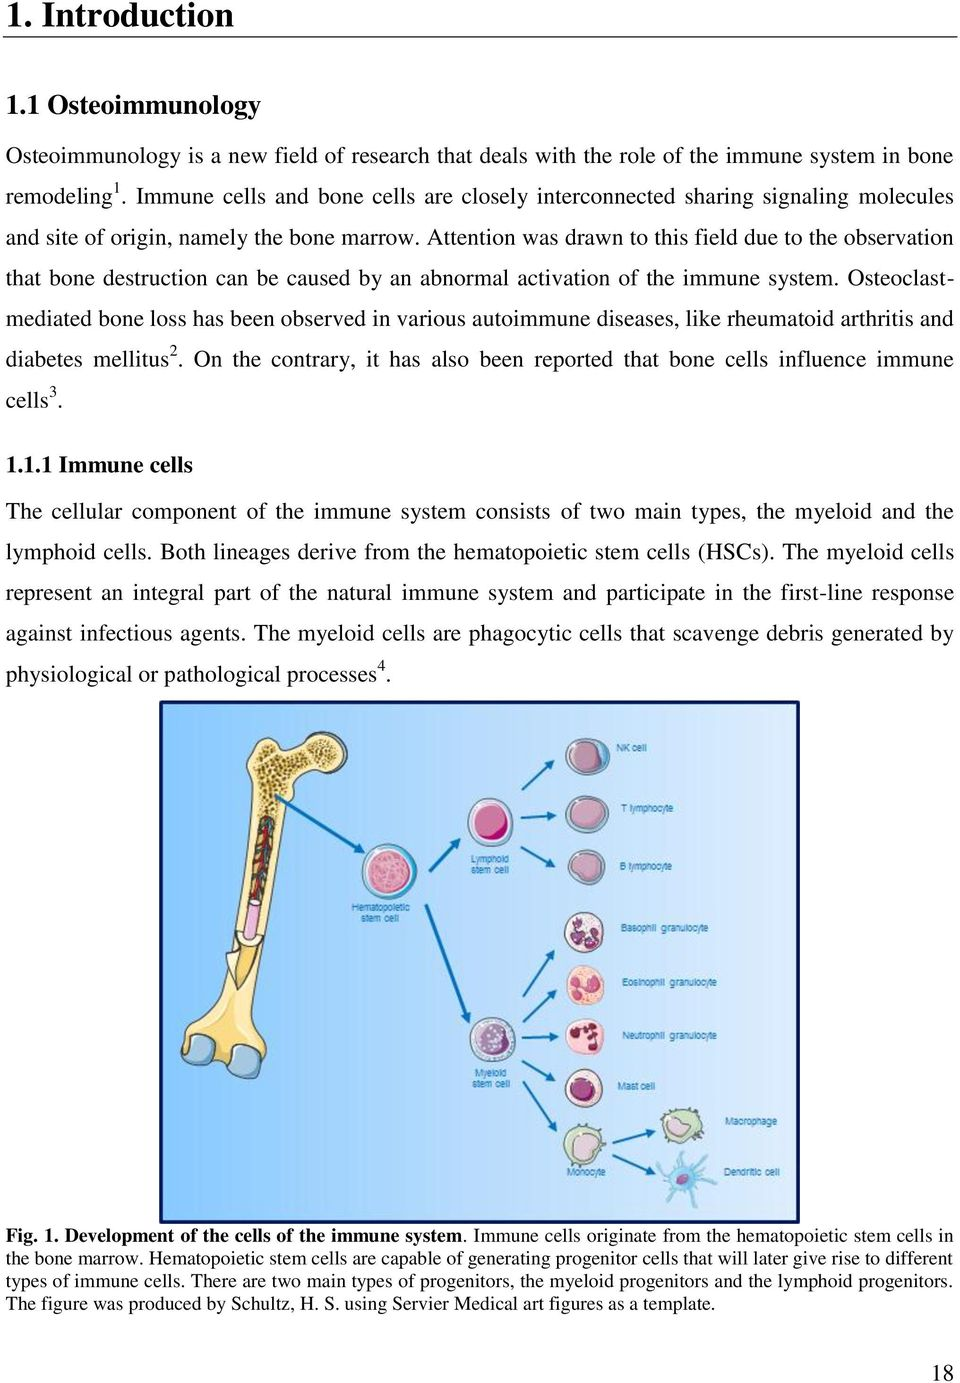 rheumatoid arthritis thesis Rheumatoid arthritis (ra) is a long-term autoimmune disorder that primarily affects joints it typically results in warm, swollen, and painful joints pain and.